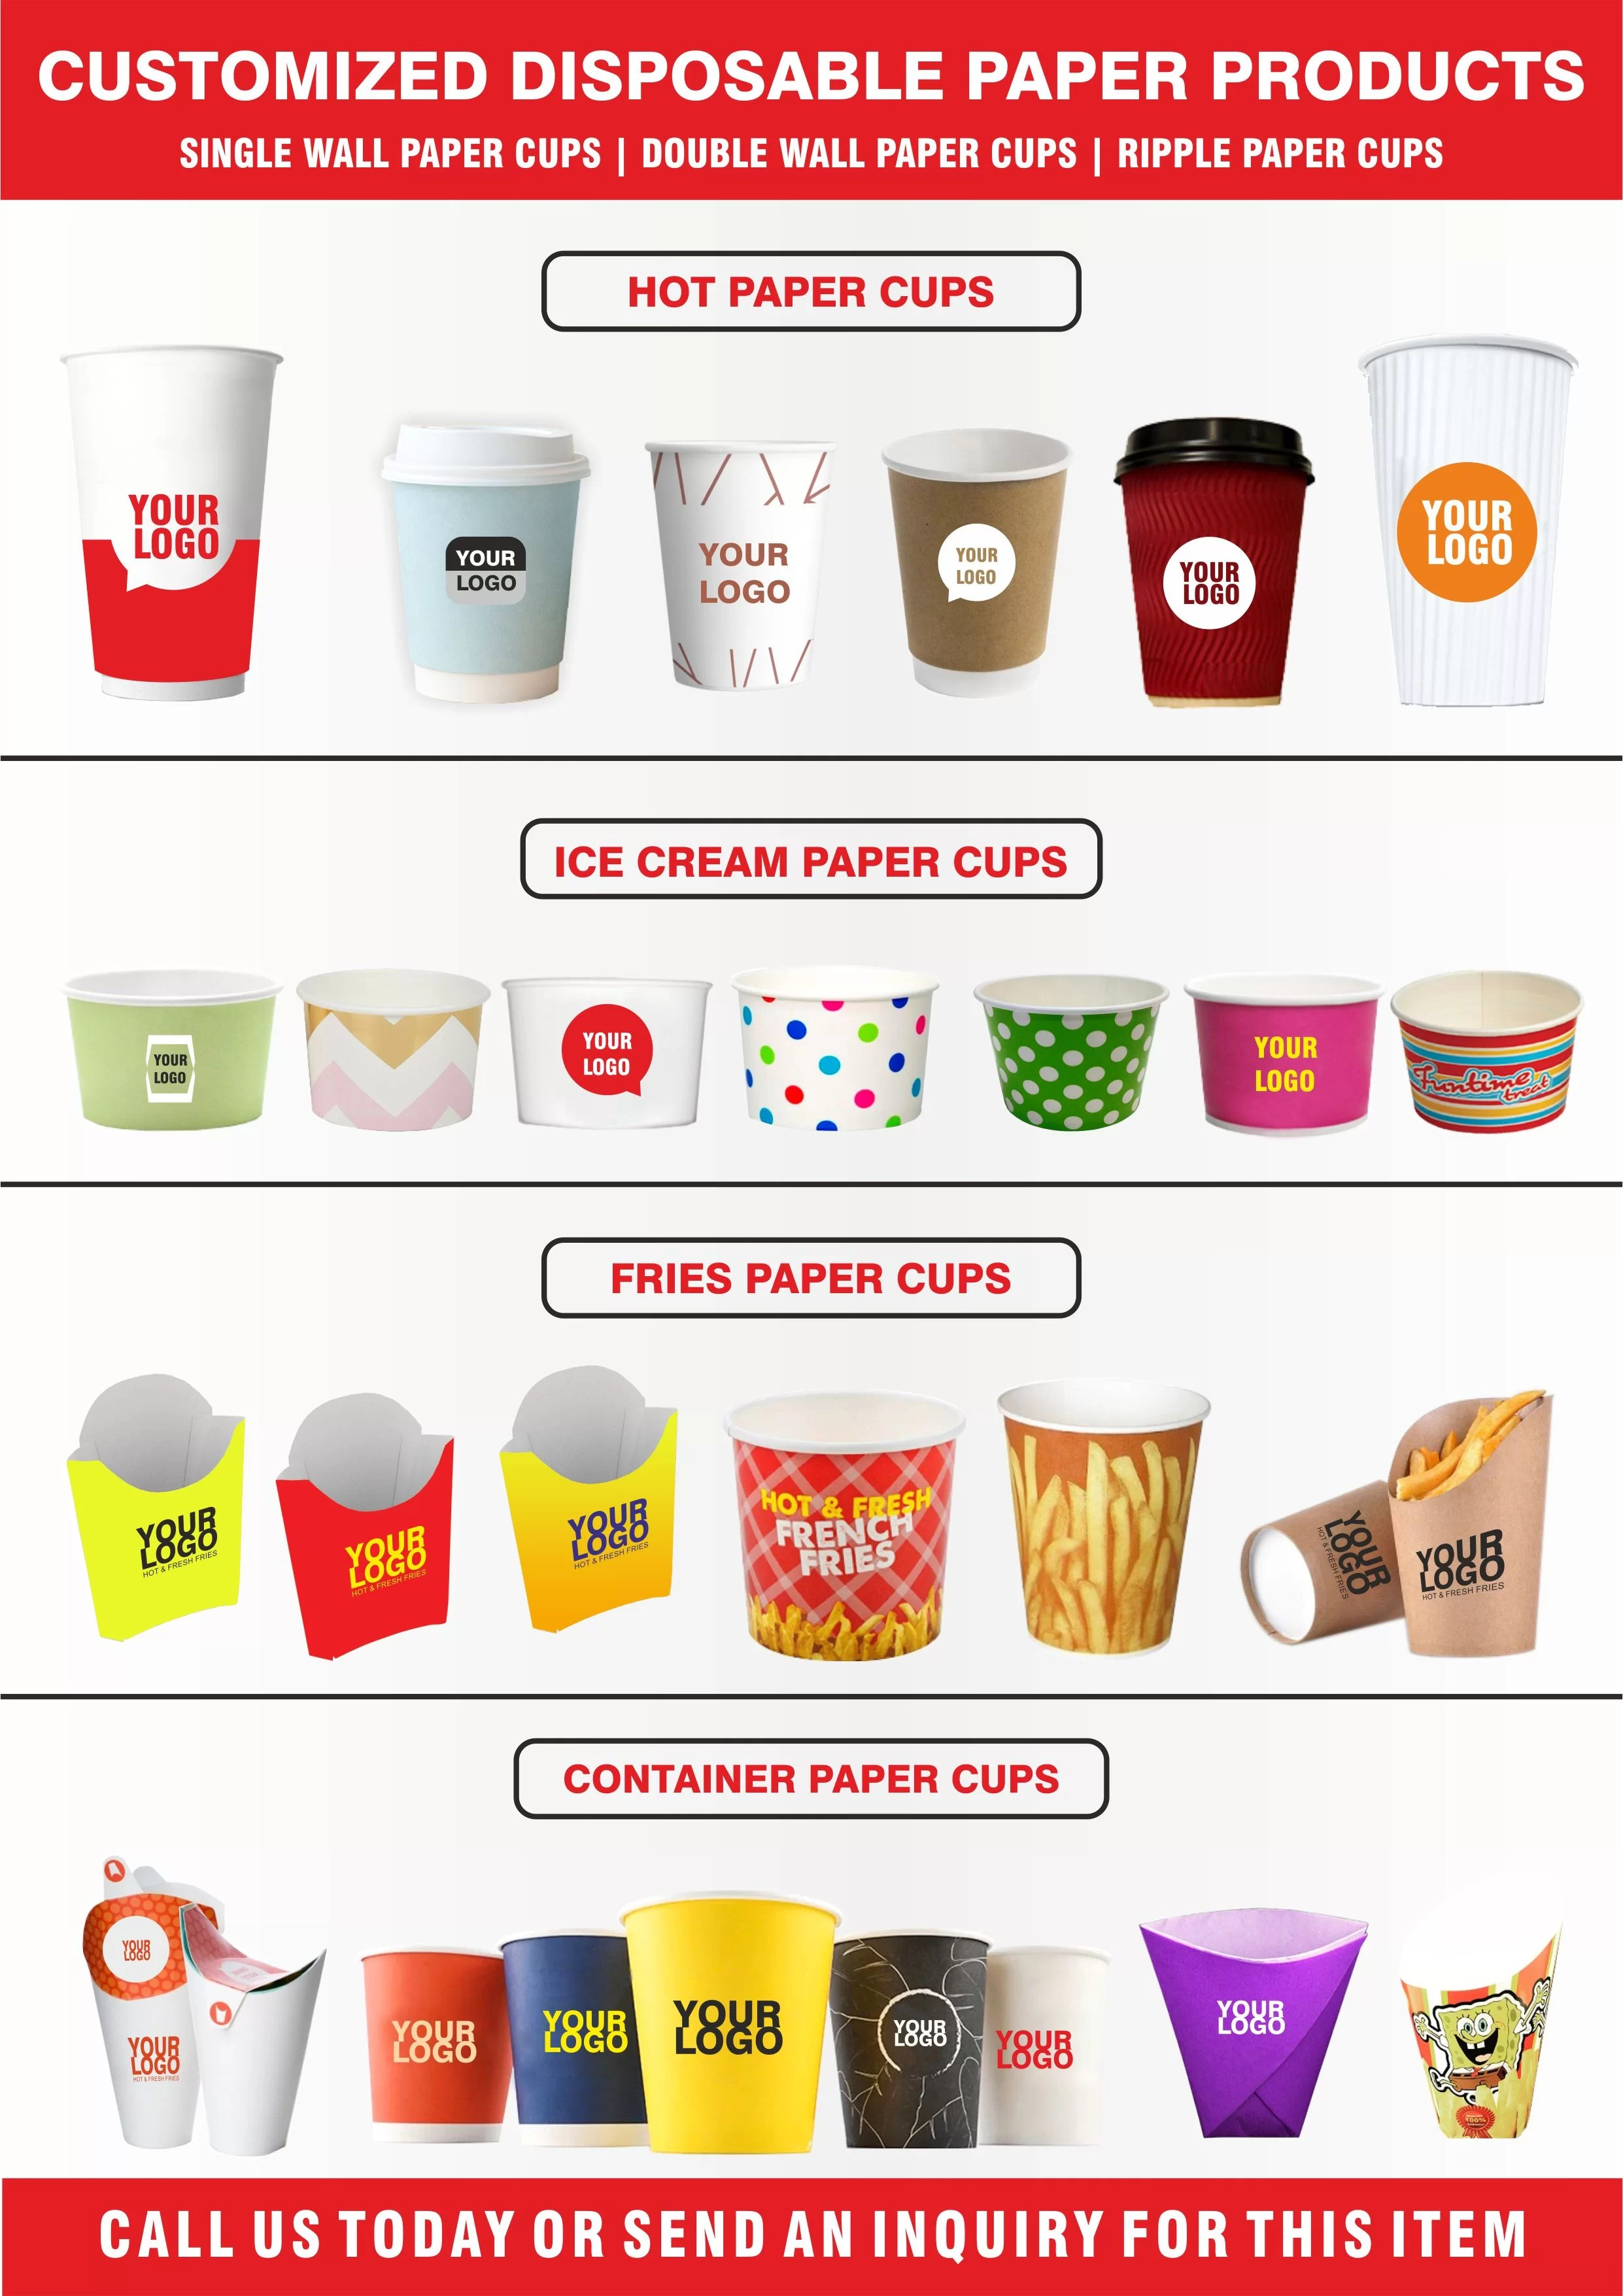 Paper Cups | Ice Cream Cups | Fries Cups | Container Cups | Disposable Products in Dubai & UAE